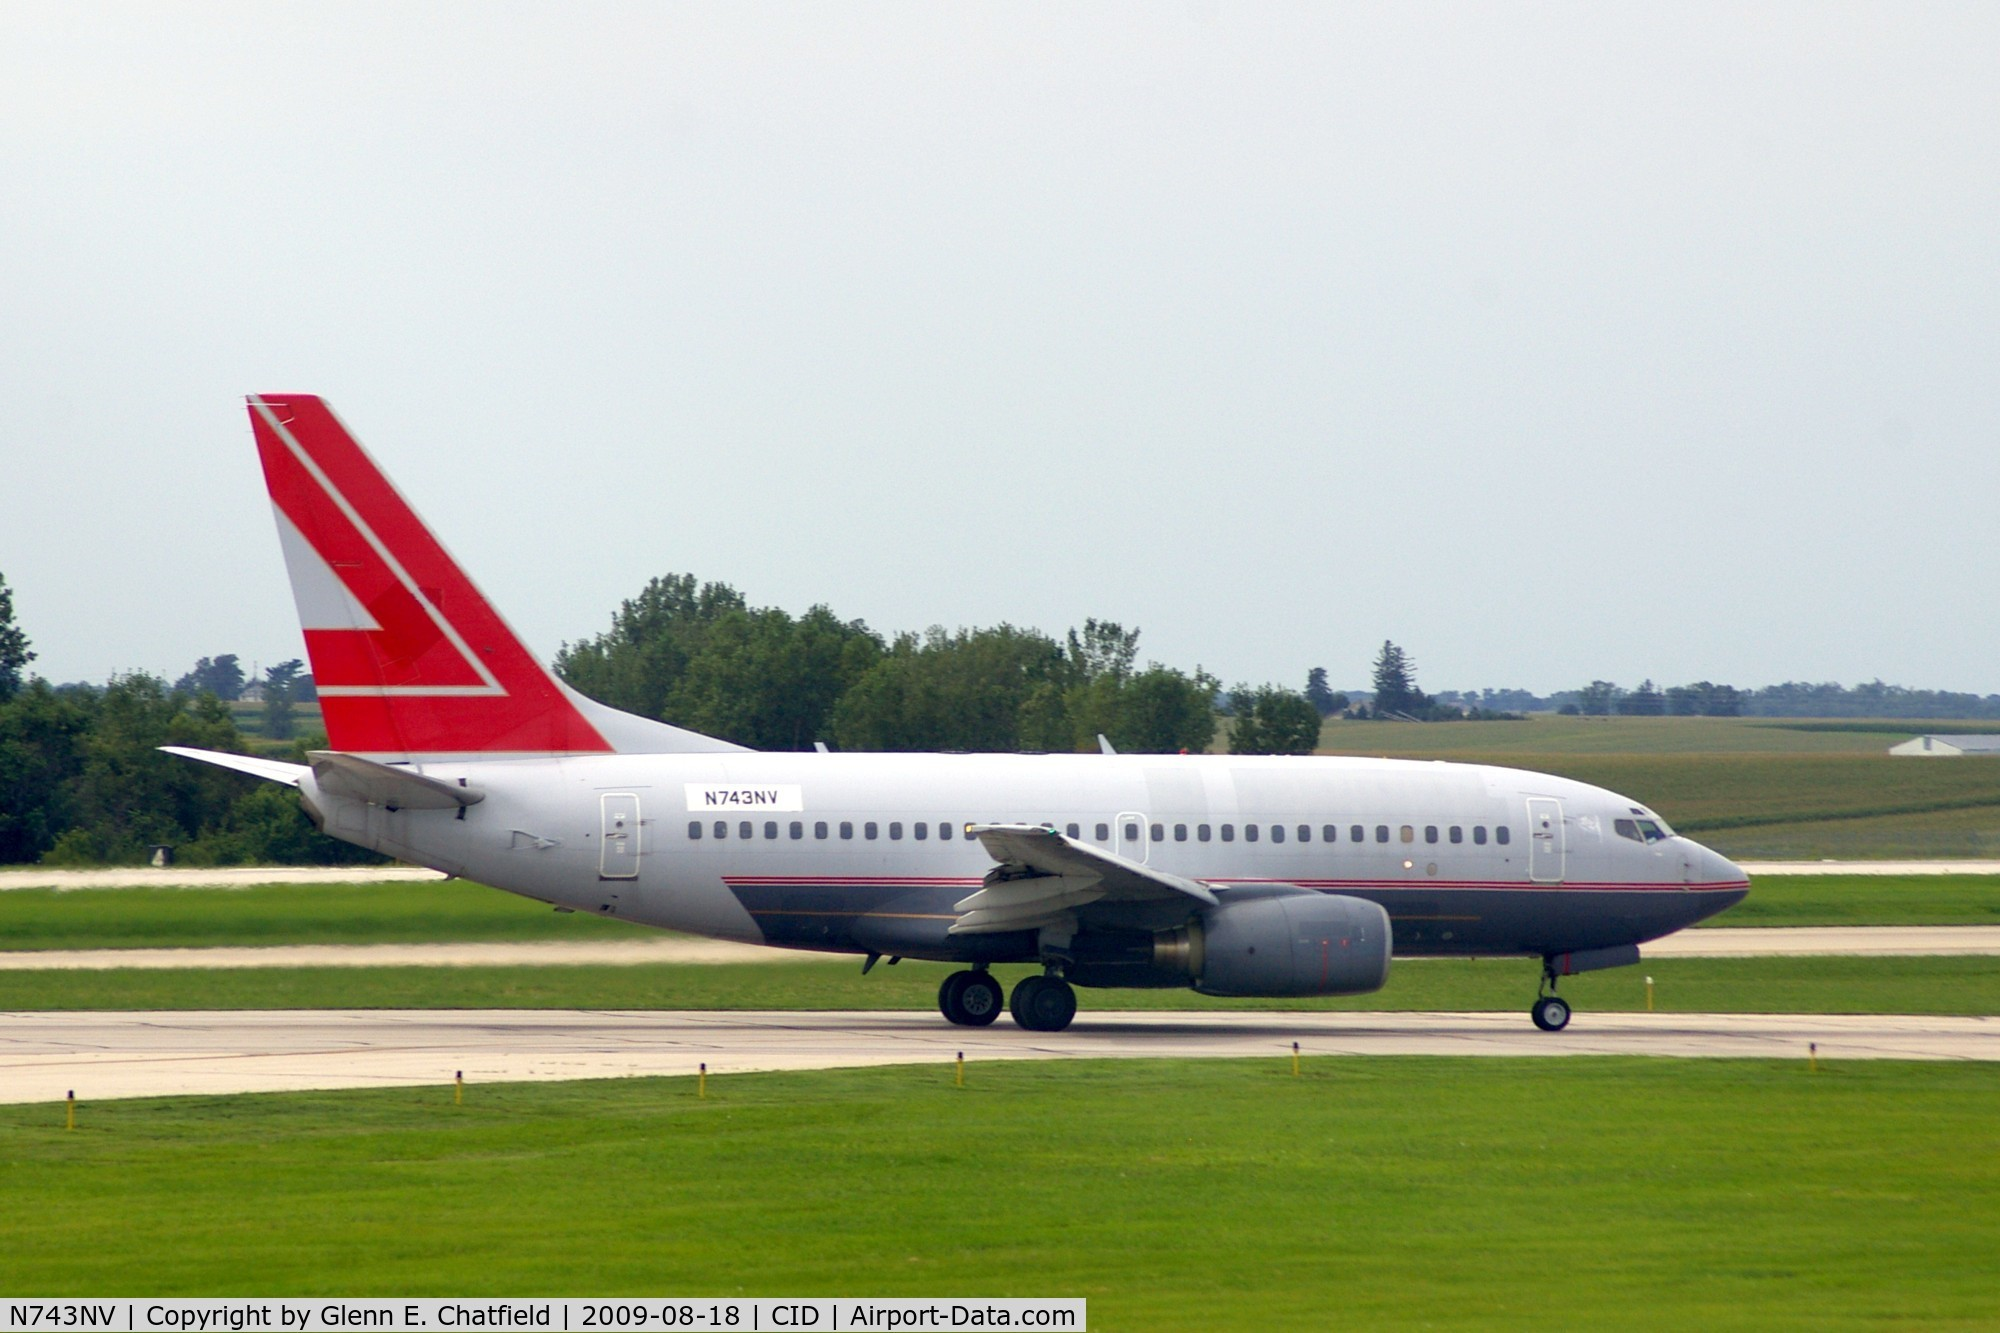 N743NV, 2000 Boeing 737-6Z9 C/N 30137, Doing touch and goes on Ry 31.  Seen from my window.